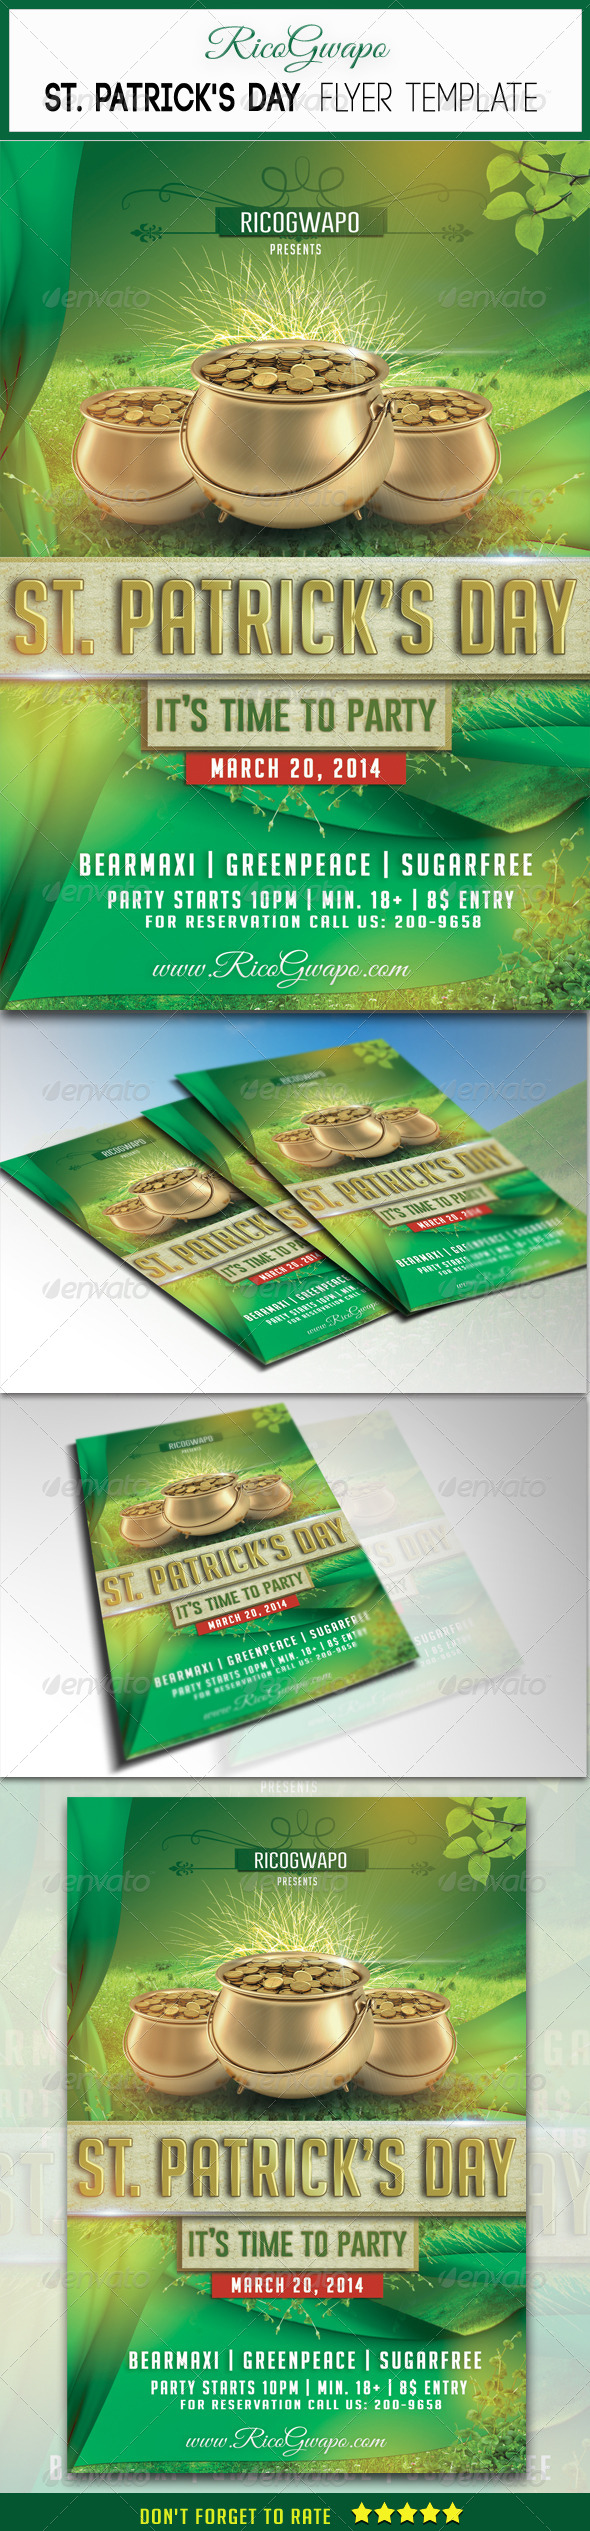 St. Patrick's Flyer Template - Flyers Print Templates